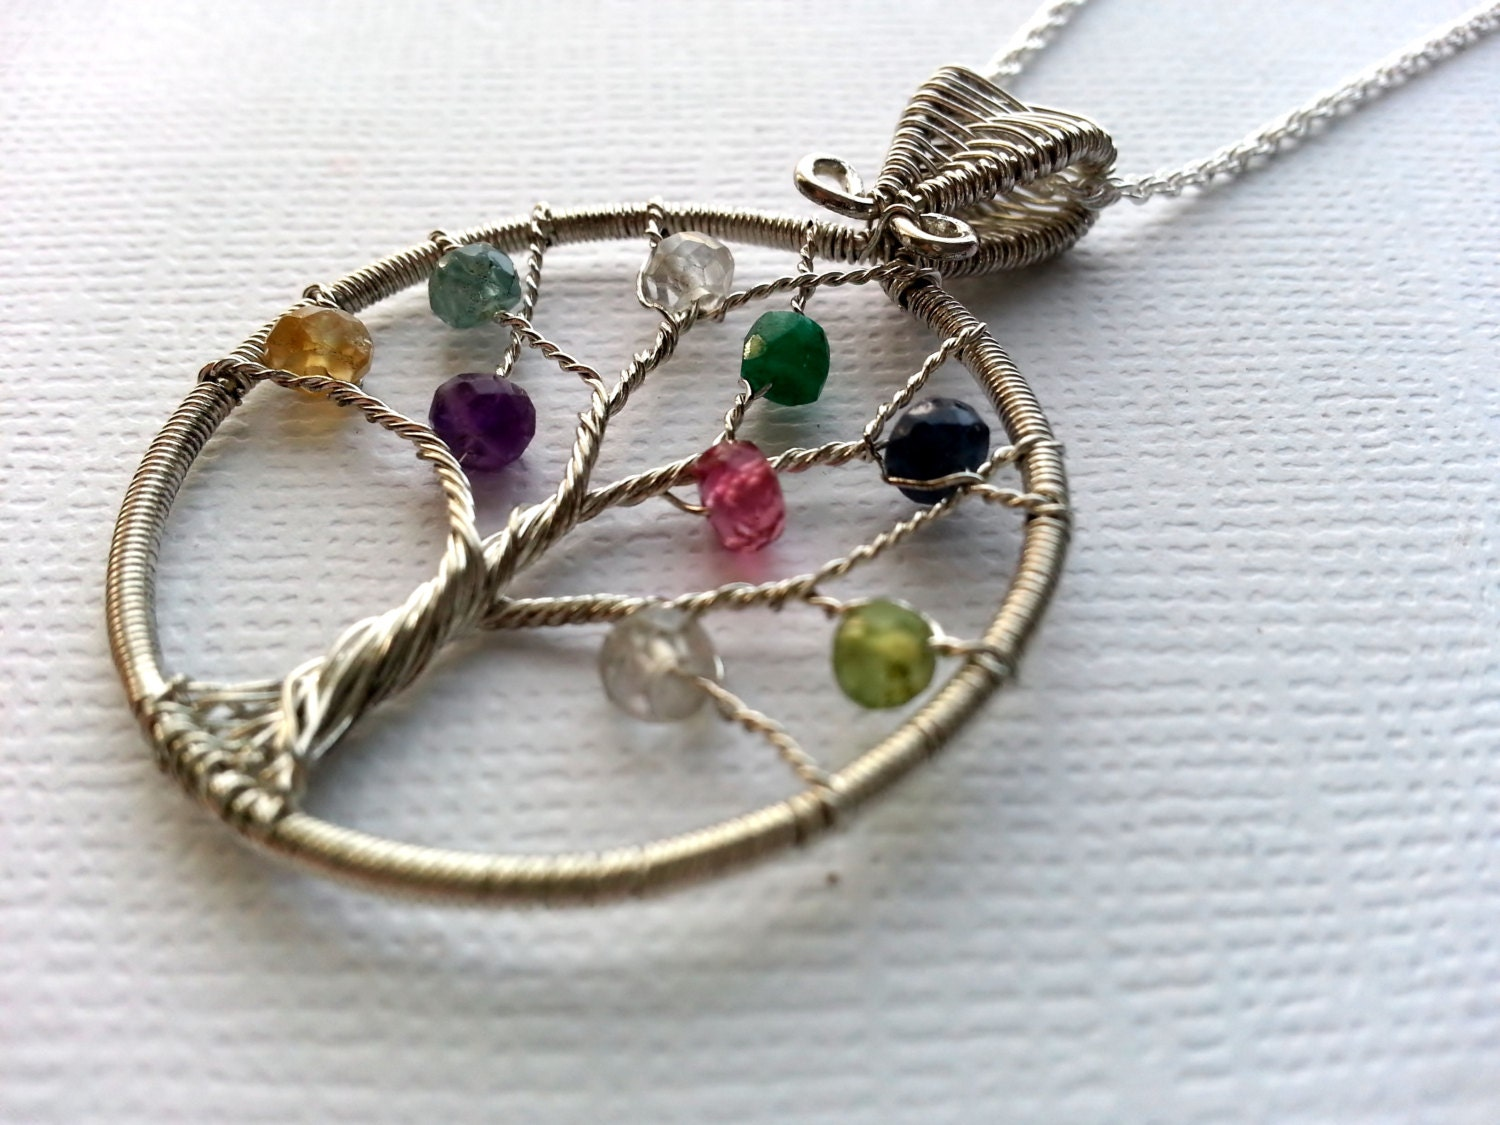 Personalized Jewelry Birthstone Necklace, Mother's Family Tree Necklace, Wire Wrapped Sterling Silver Birthstone Jewelry - SpiceofLifeDesigns